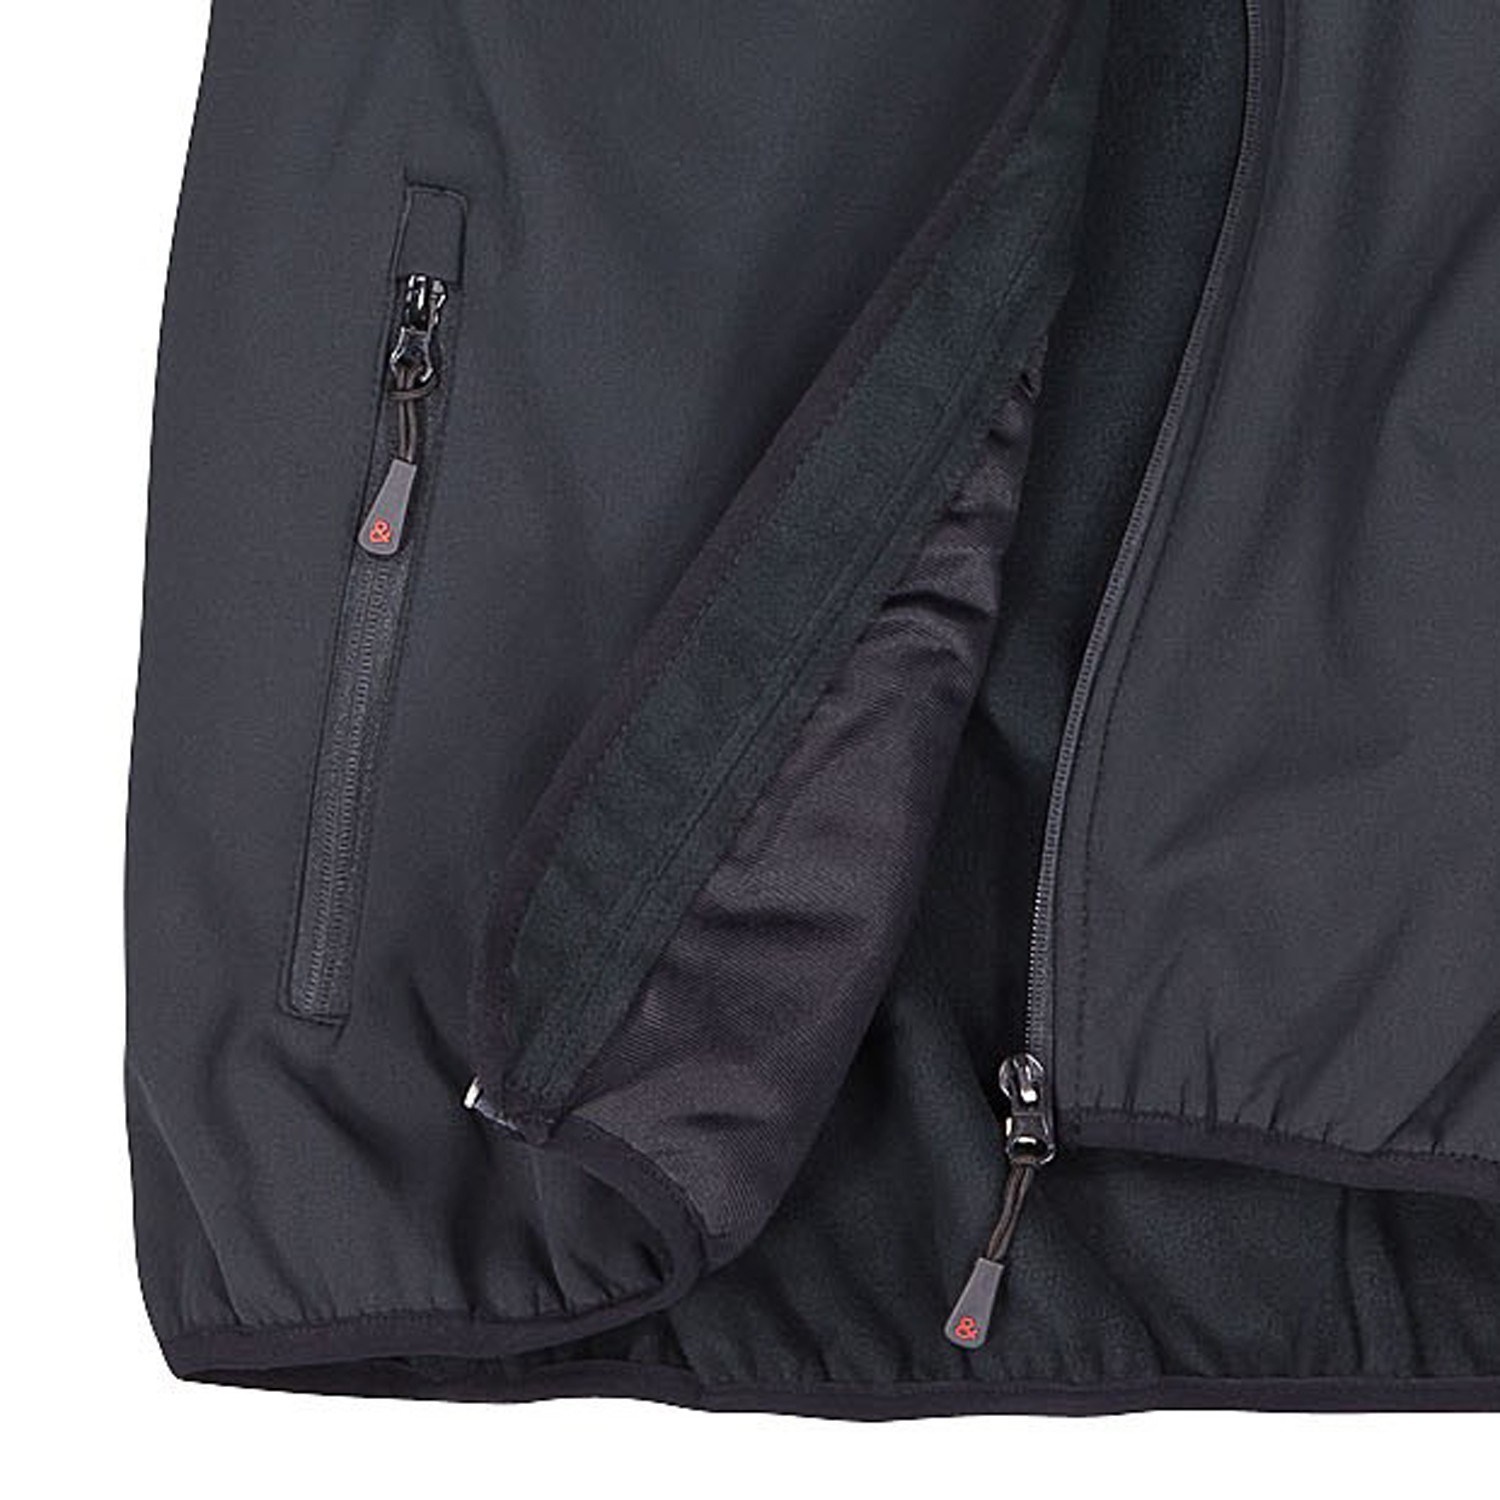 Detail Image to Softshell vest in black by marc&mark in plus sizes up to 10XL